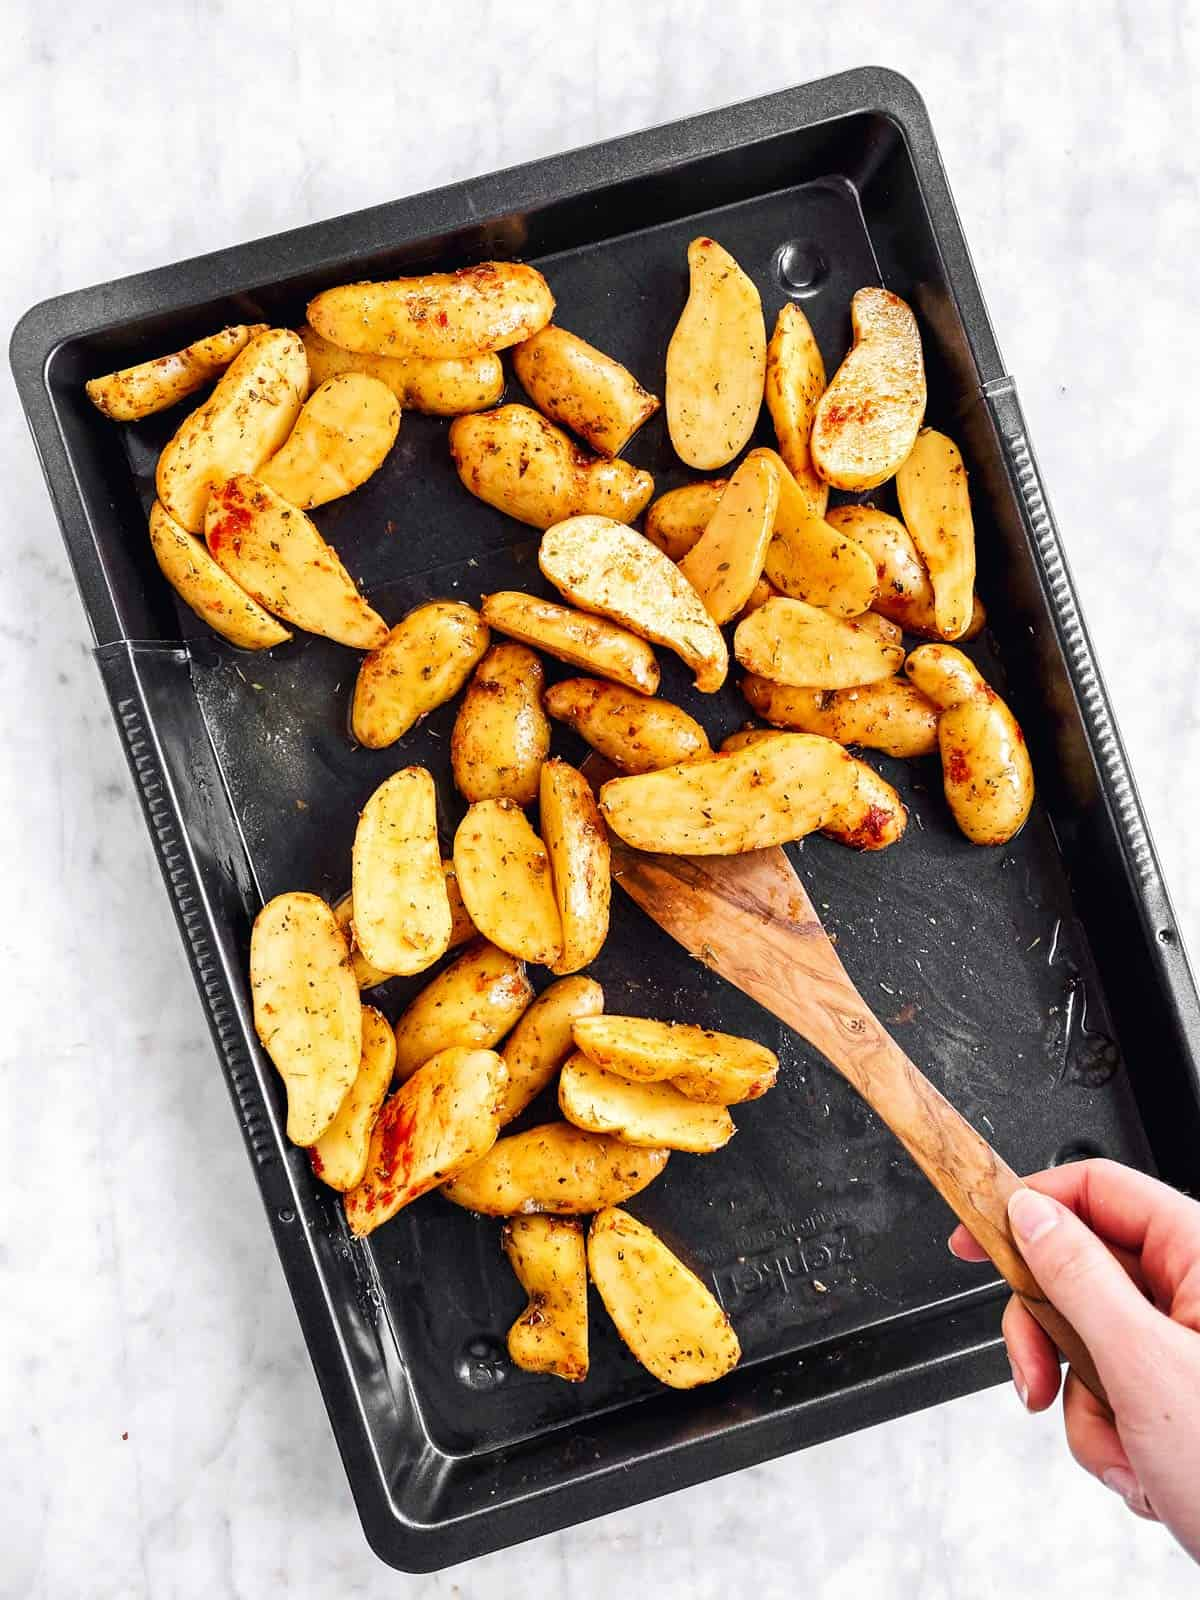 female hand tossing potatoes with wooden spoon on dark pan